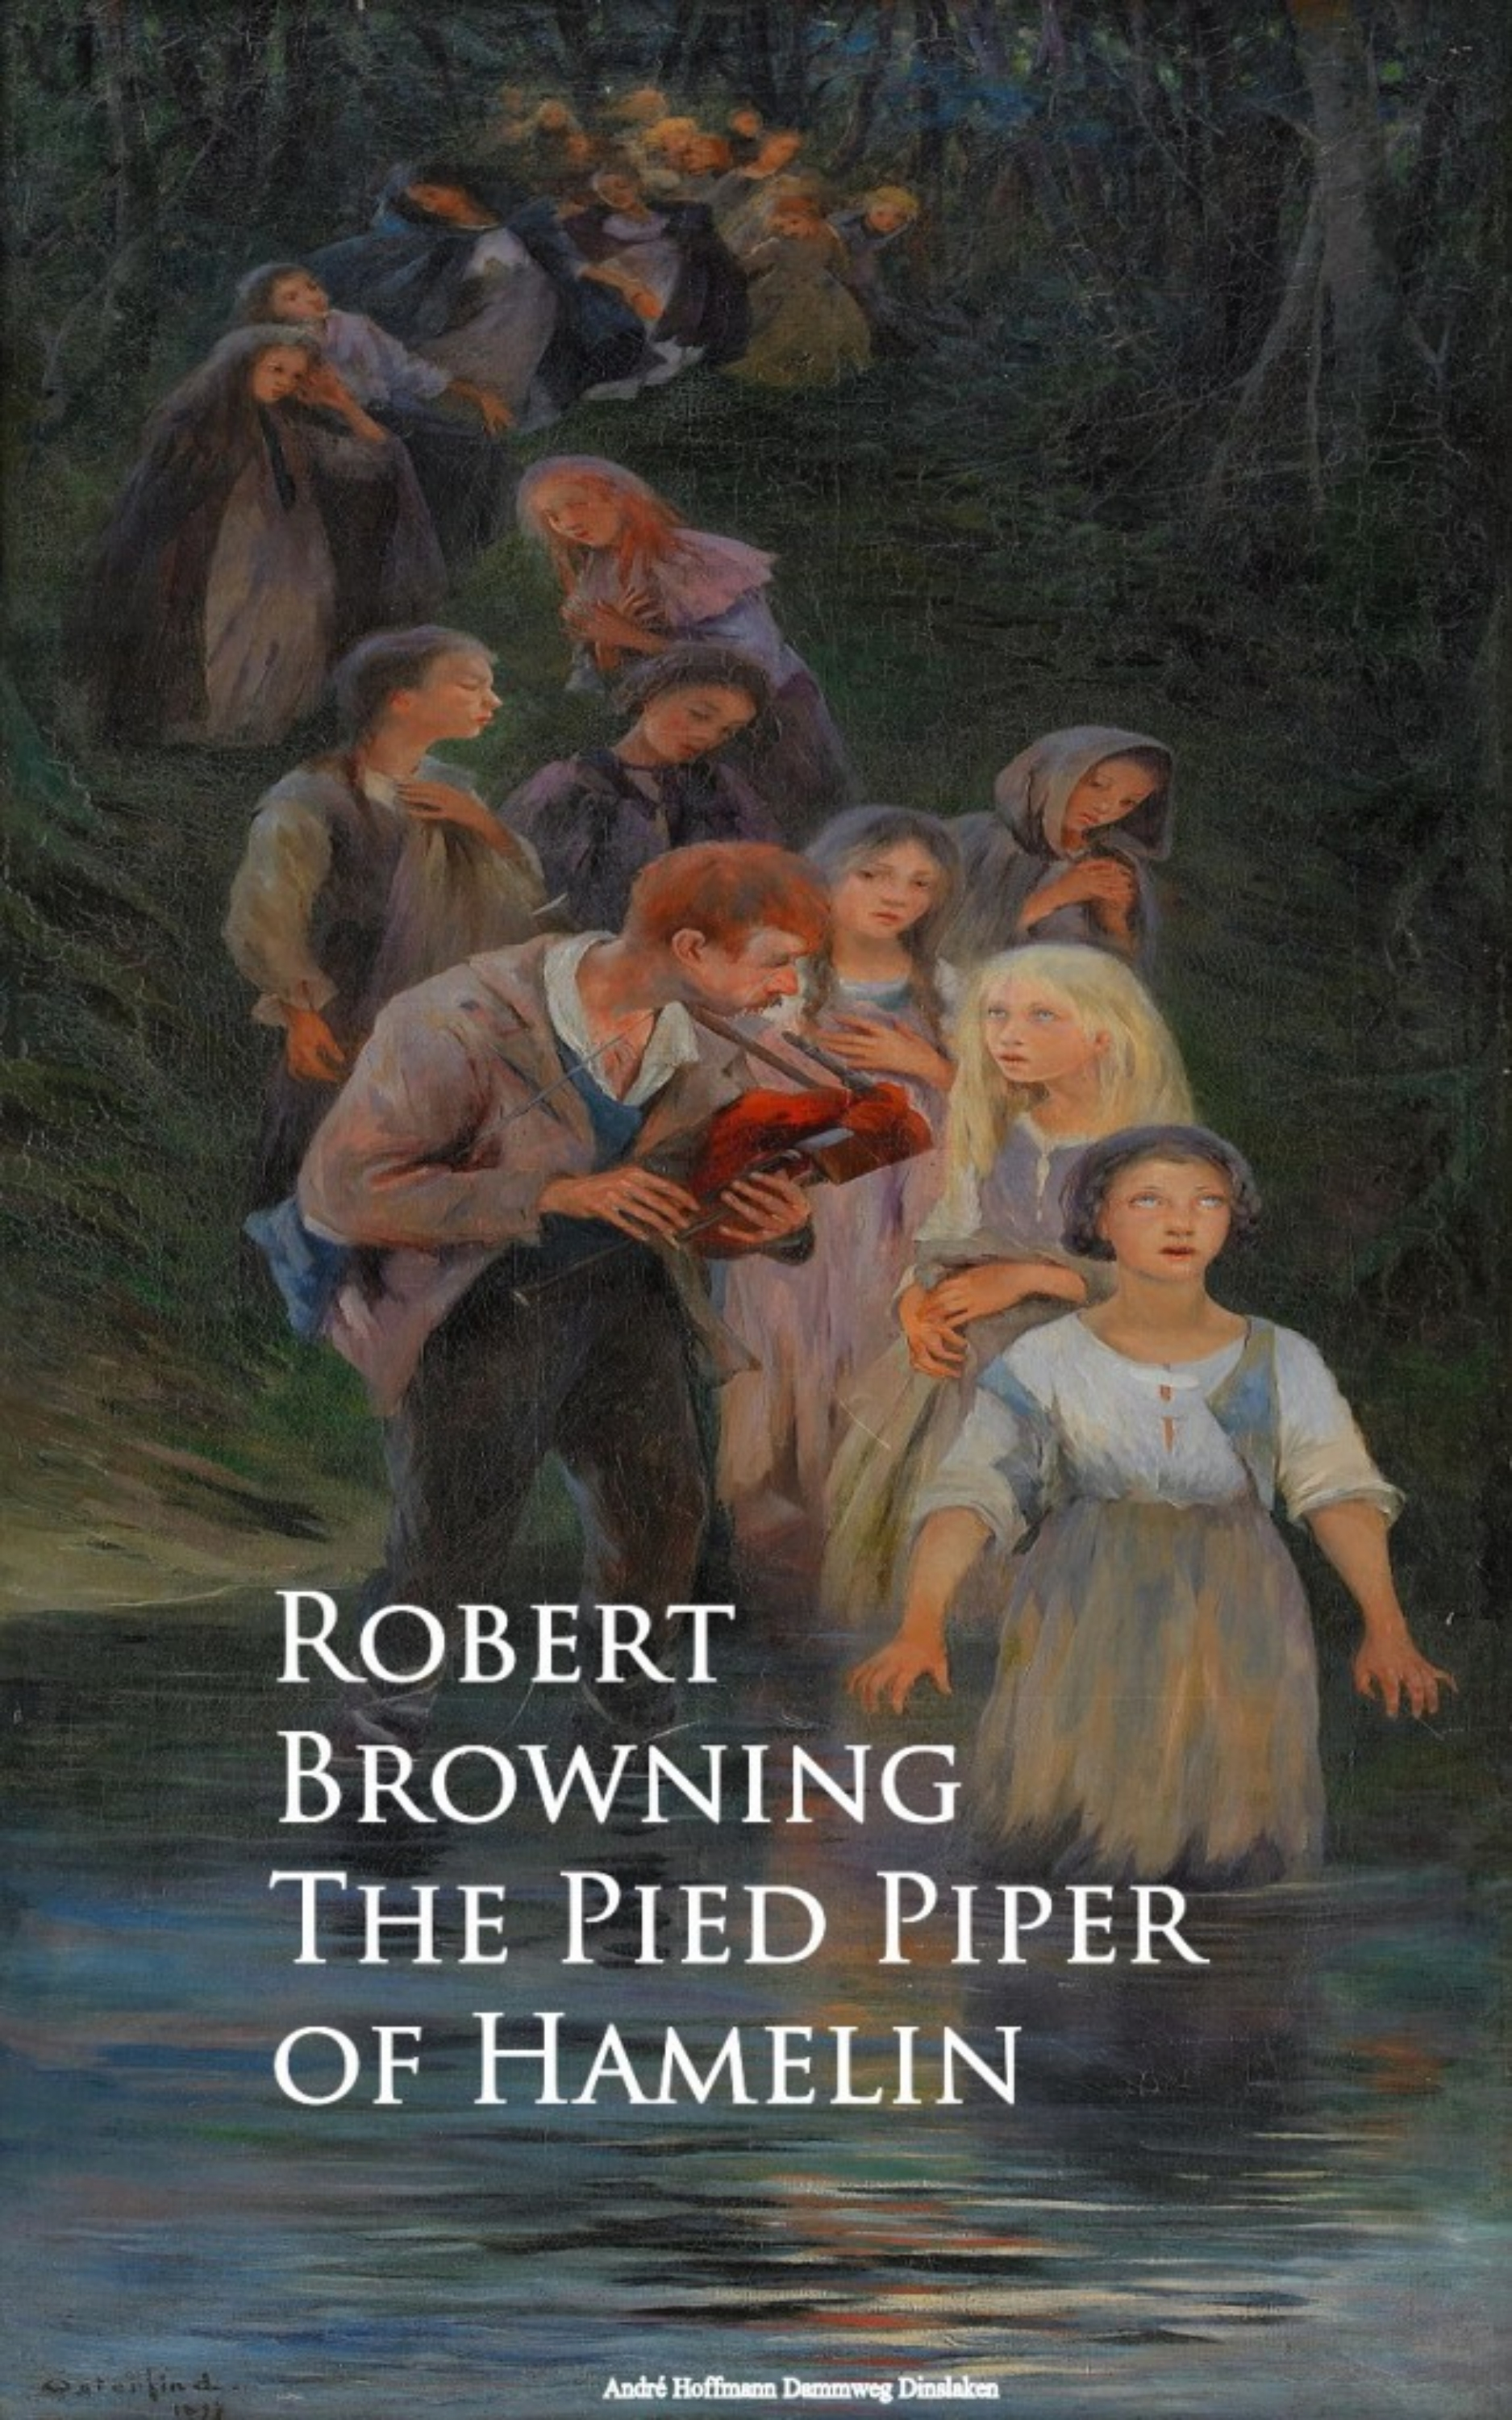 Robert Browning The Pied Piper of Hamelin цена и фото